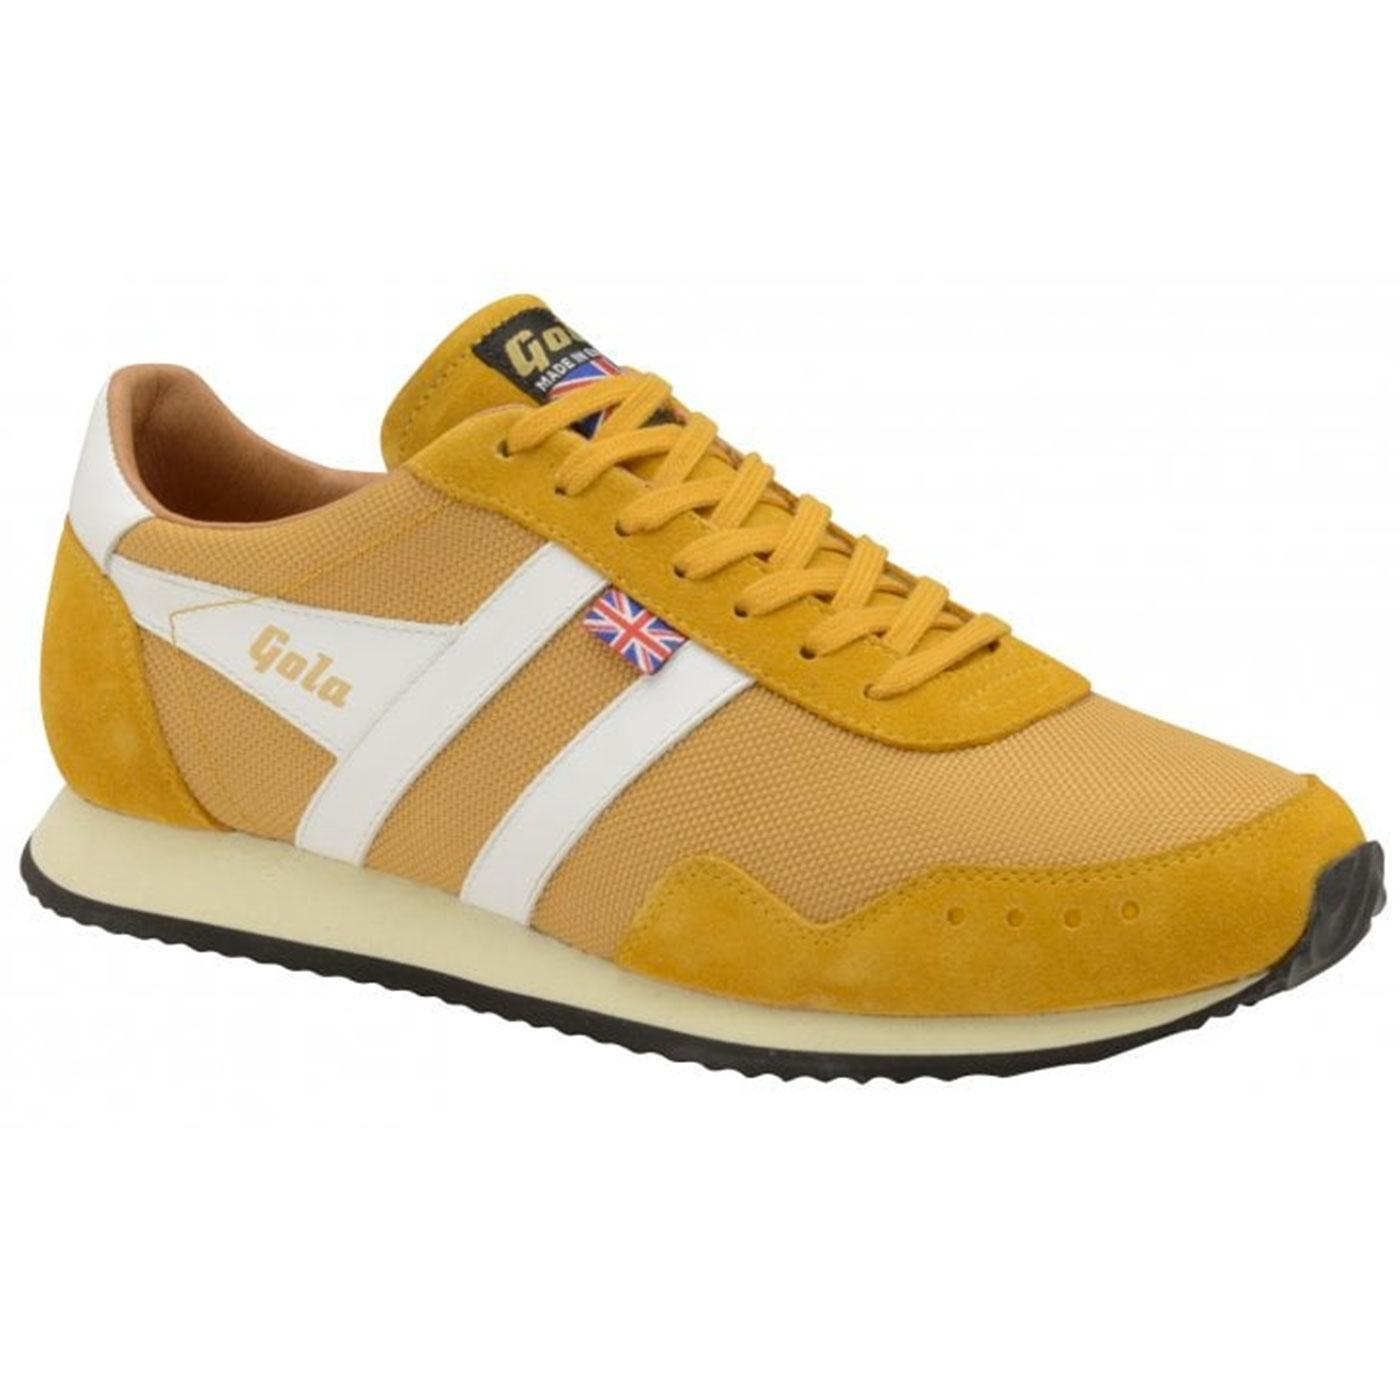 Track Mesh GOLA Made in England Retro Trainers S/W